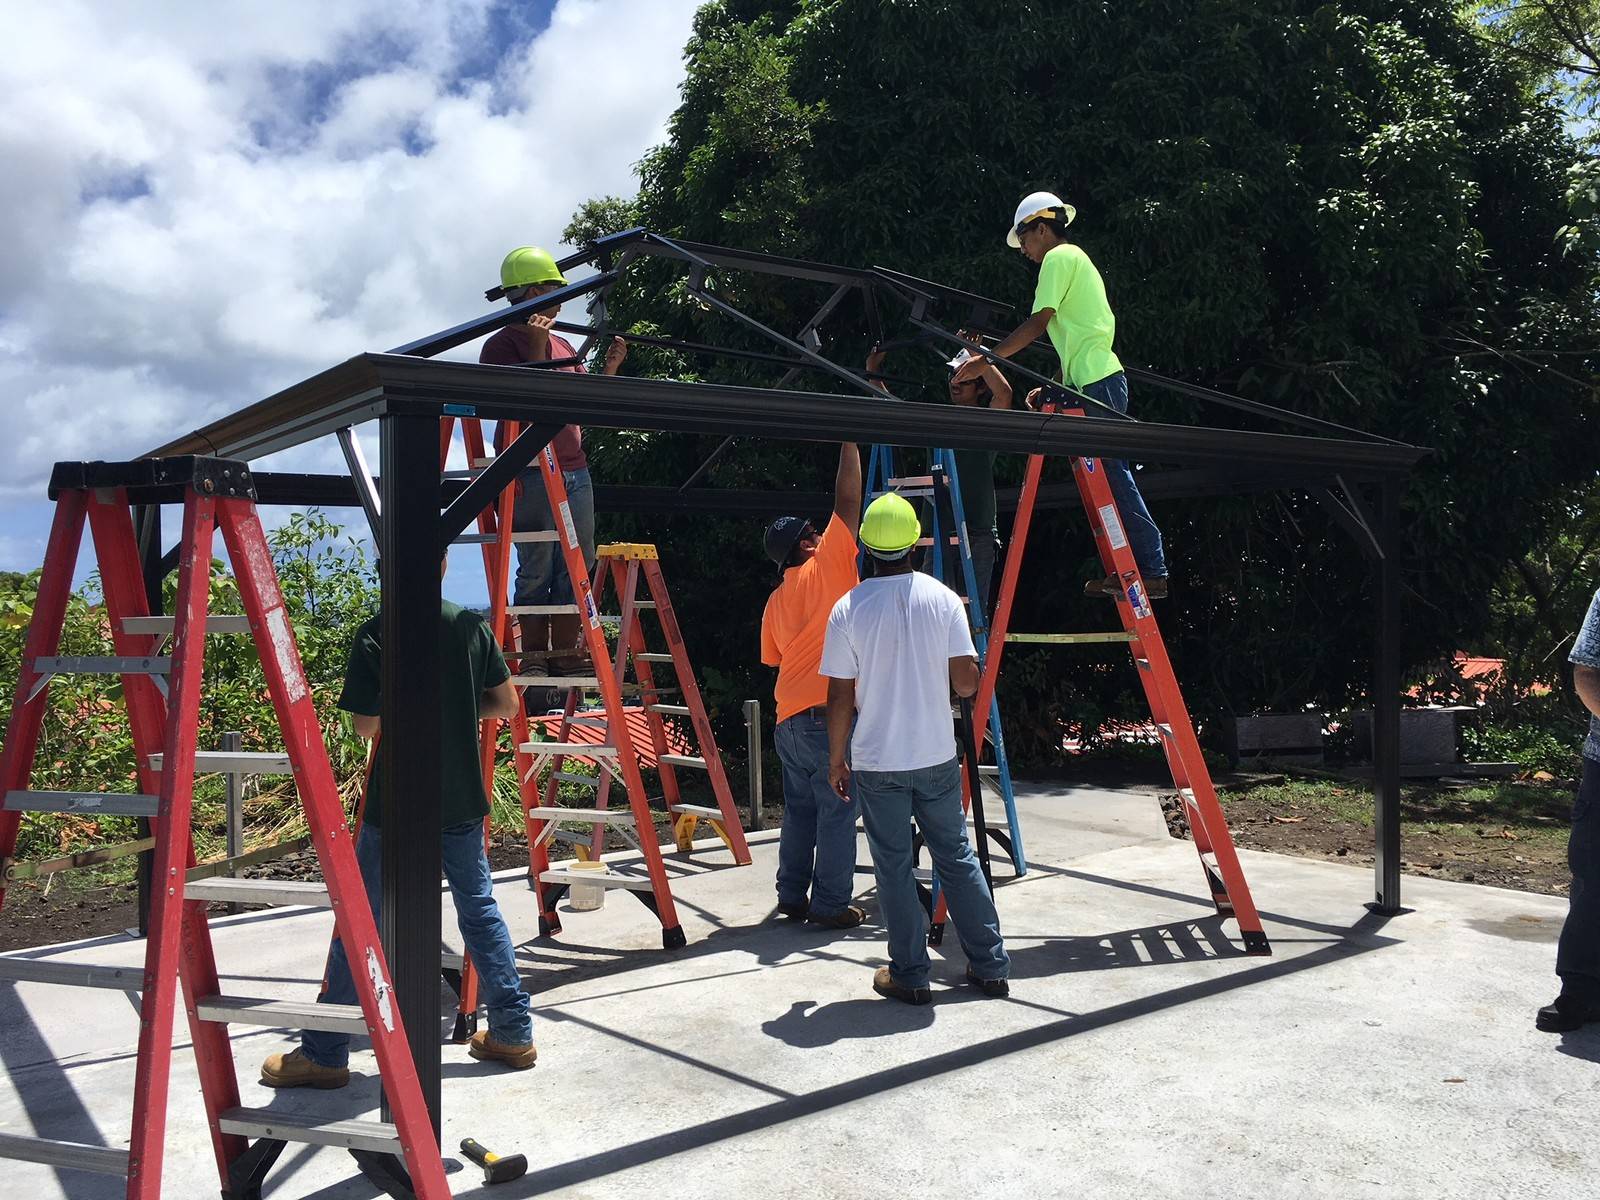 Group of workers, one on ladder, working on gazebo frame.